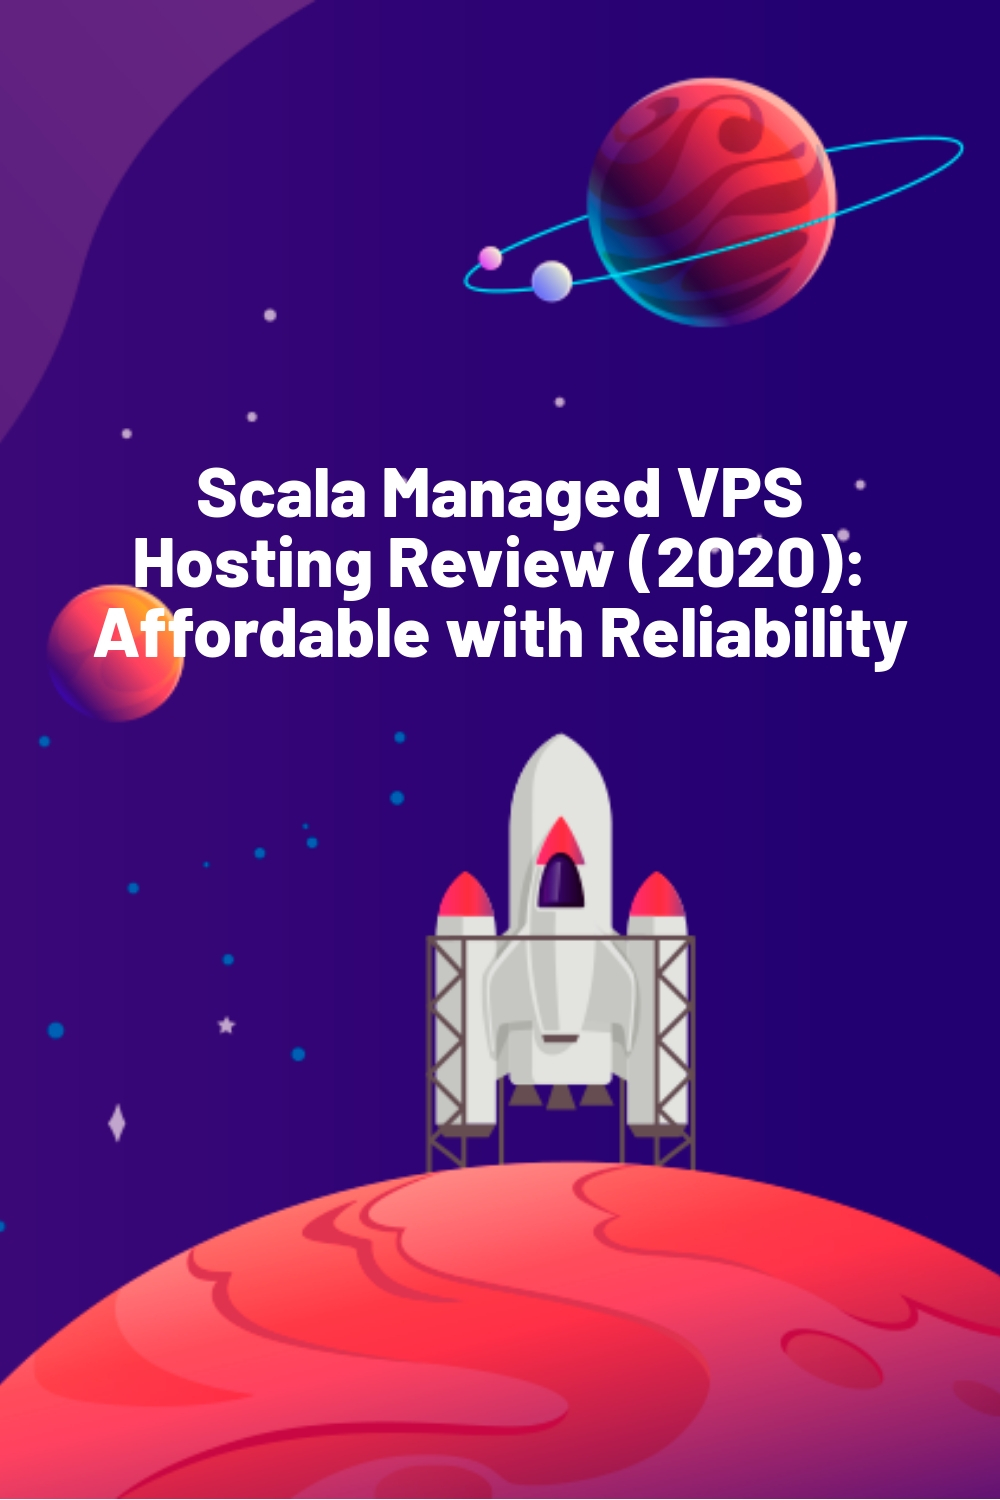 Scala Managed VPS Hosting Review (2020): Affordable with Reliability